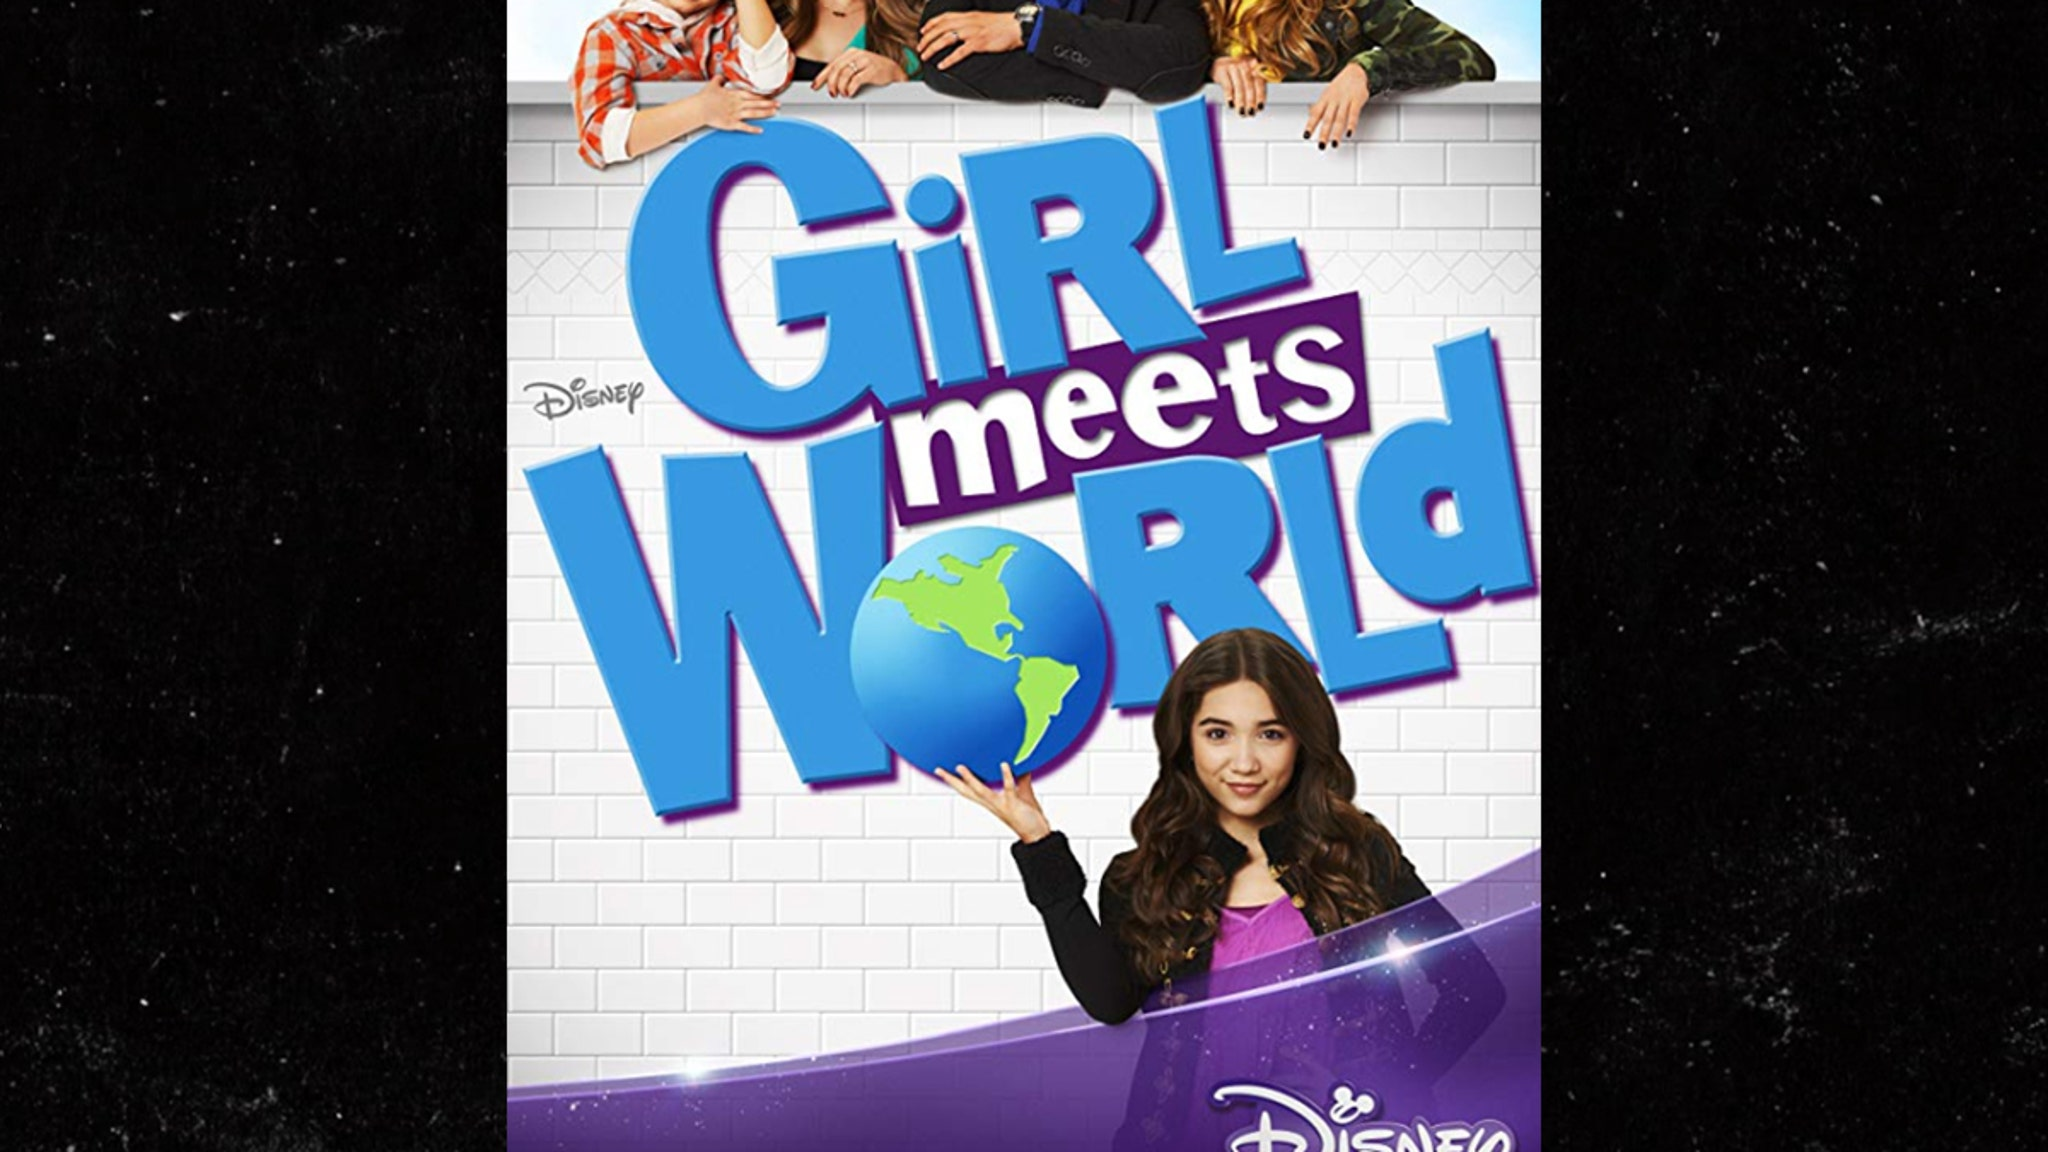 'Girl Meets World' Dragged for 'Problematic' Episodes & Themes thumbnail